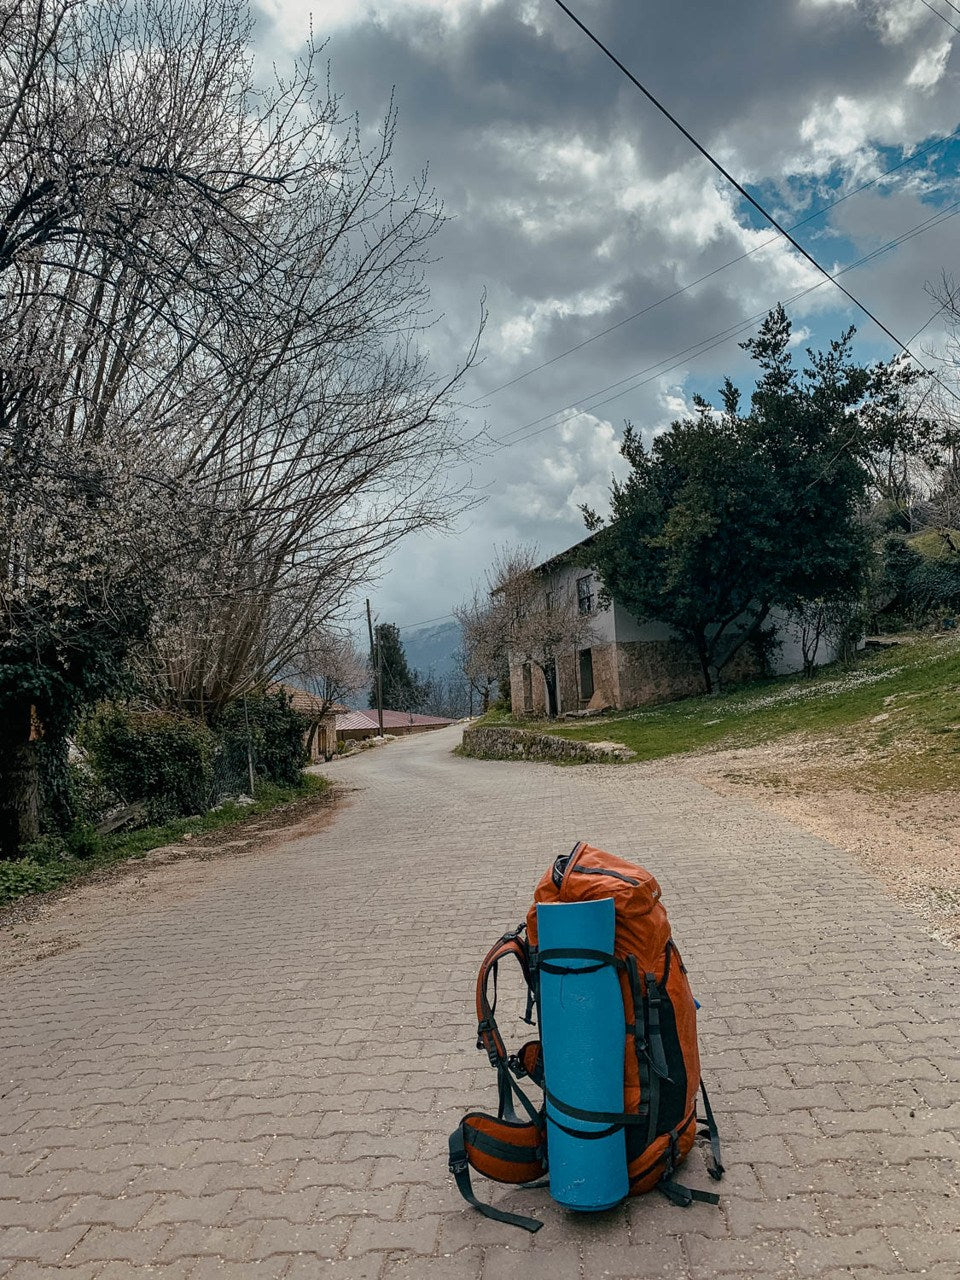 rent a house in Turkey and wait out quarantine in a quiet city by the sea